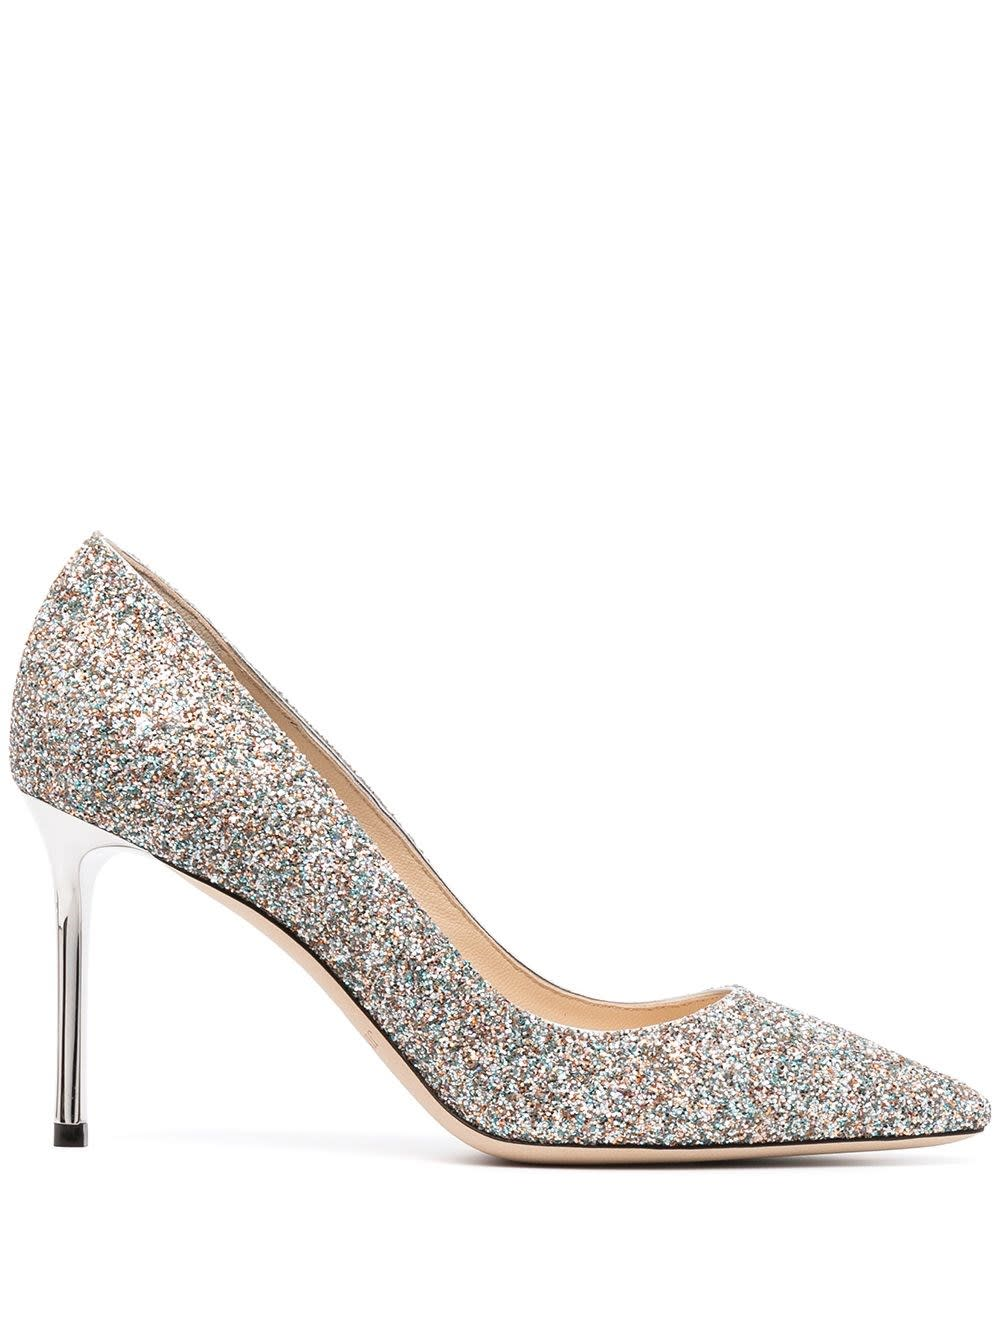 Buy Jimmy Choo Romy Glittered Pumps online, shop Jimmy Choo shoes with free shipping